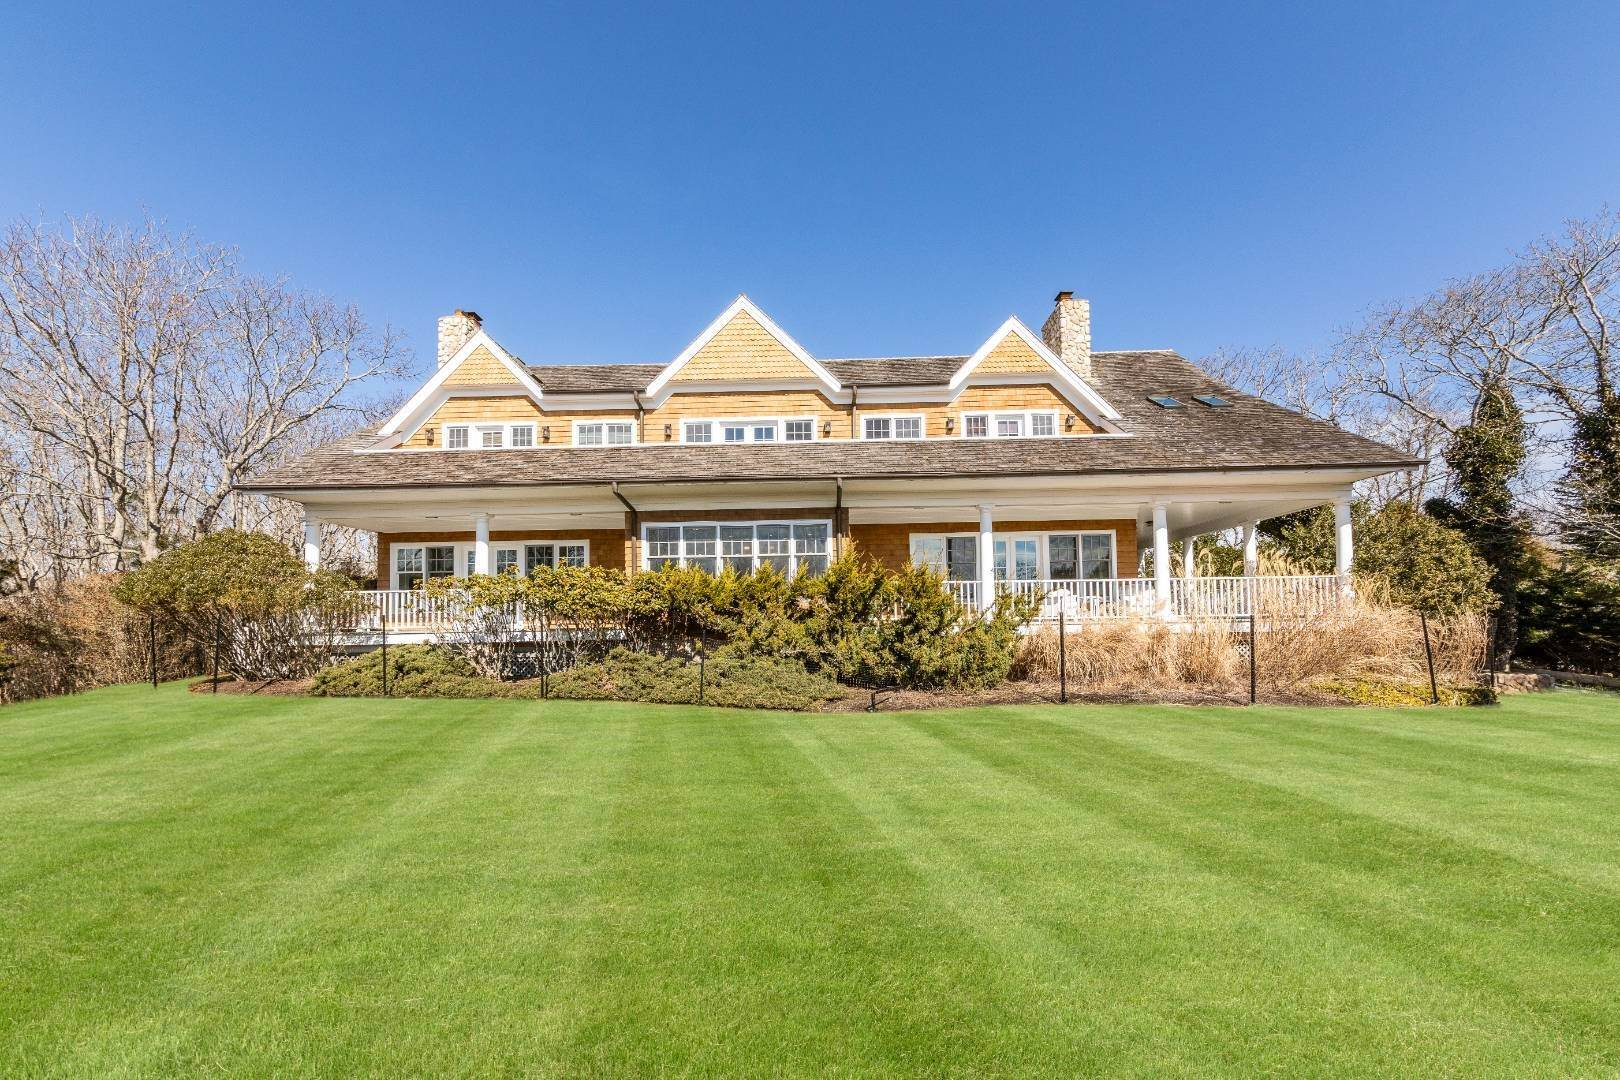 Single Family Home for Sale at Magnificent Montauk With Ocean Views 16 Fir Lane, Montauk, NY 11954